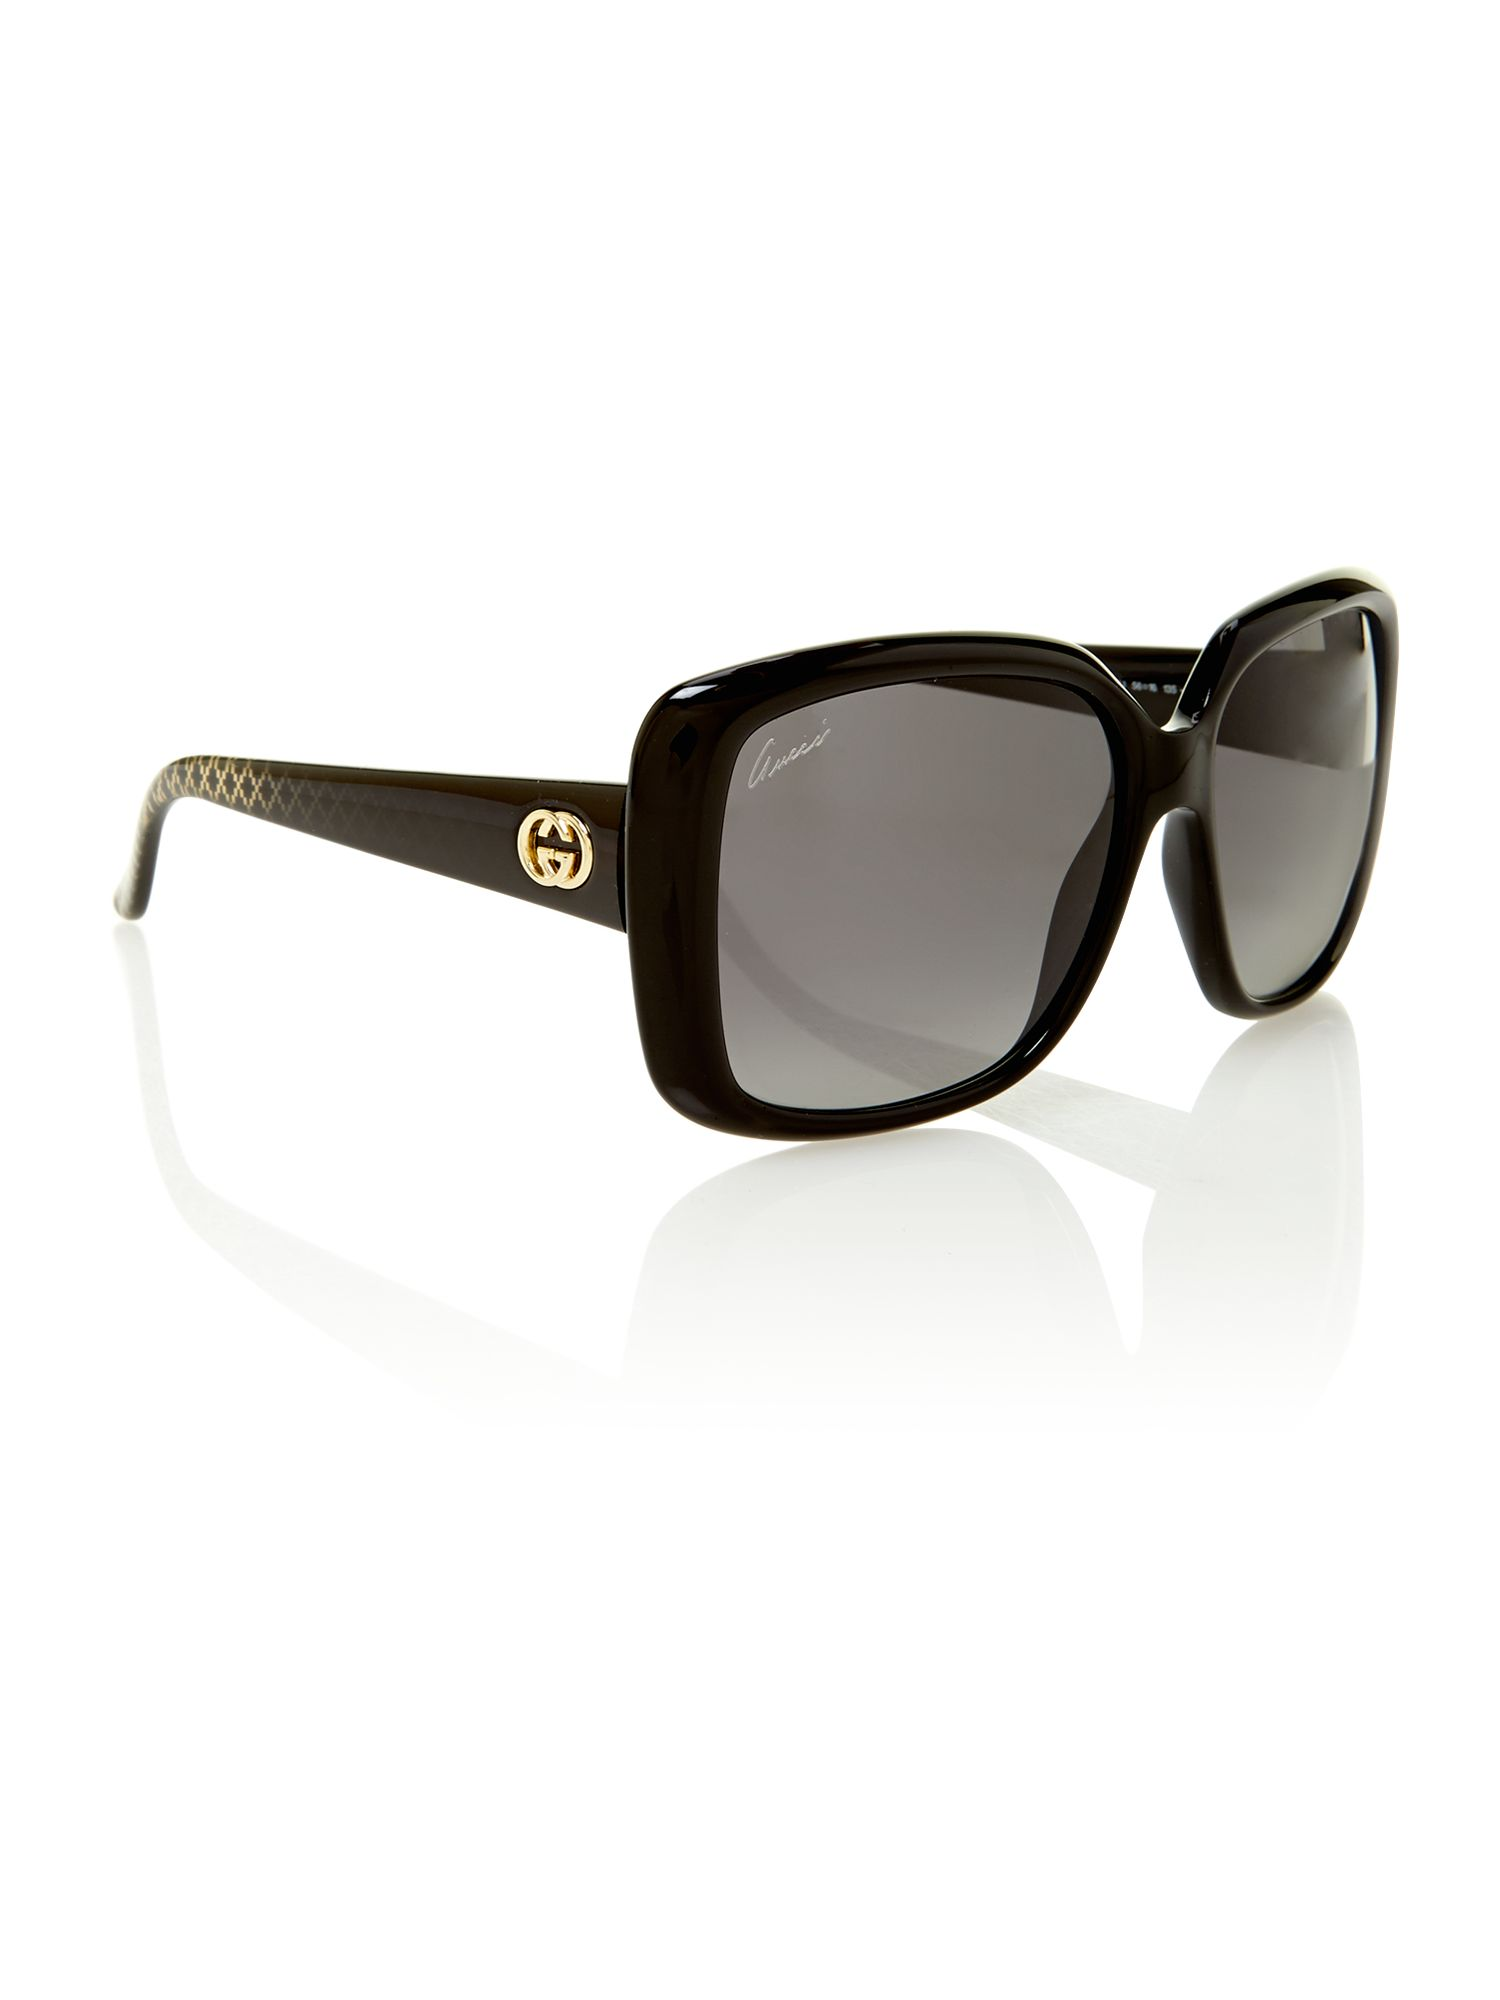 Ladies GG3574/S black square sunglasses